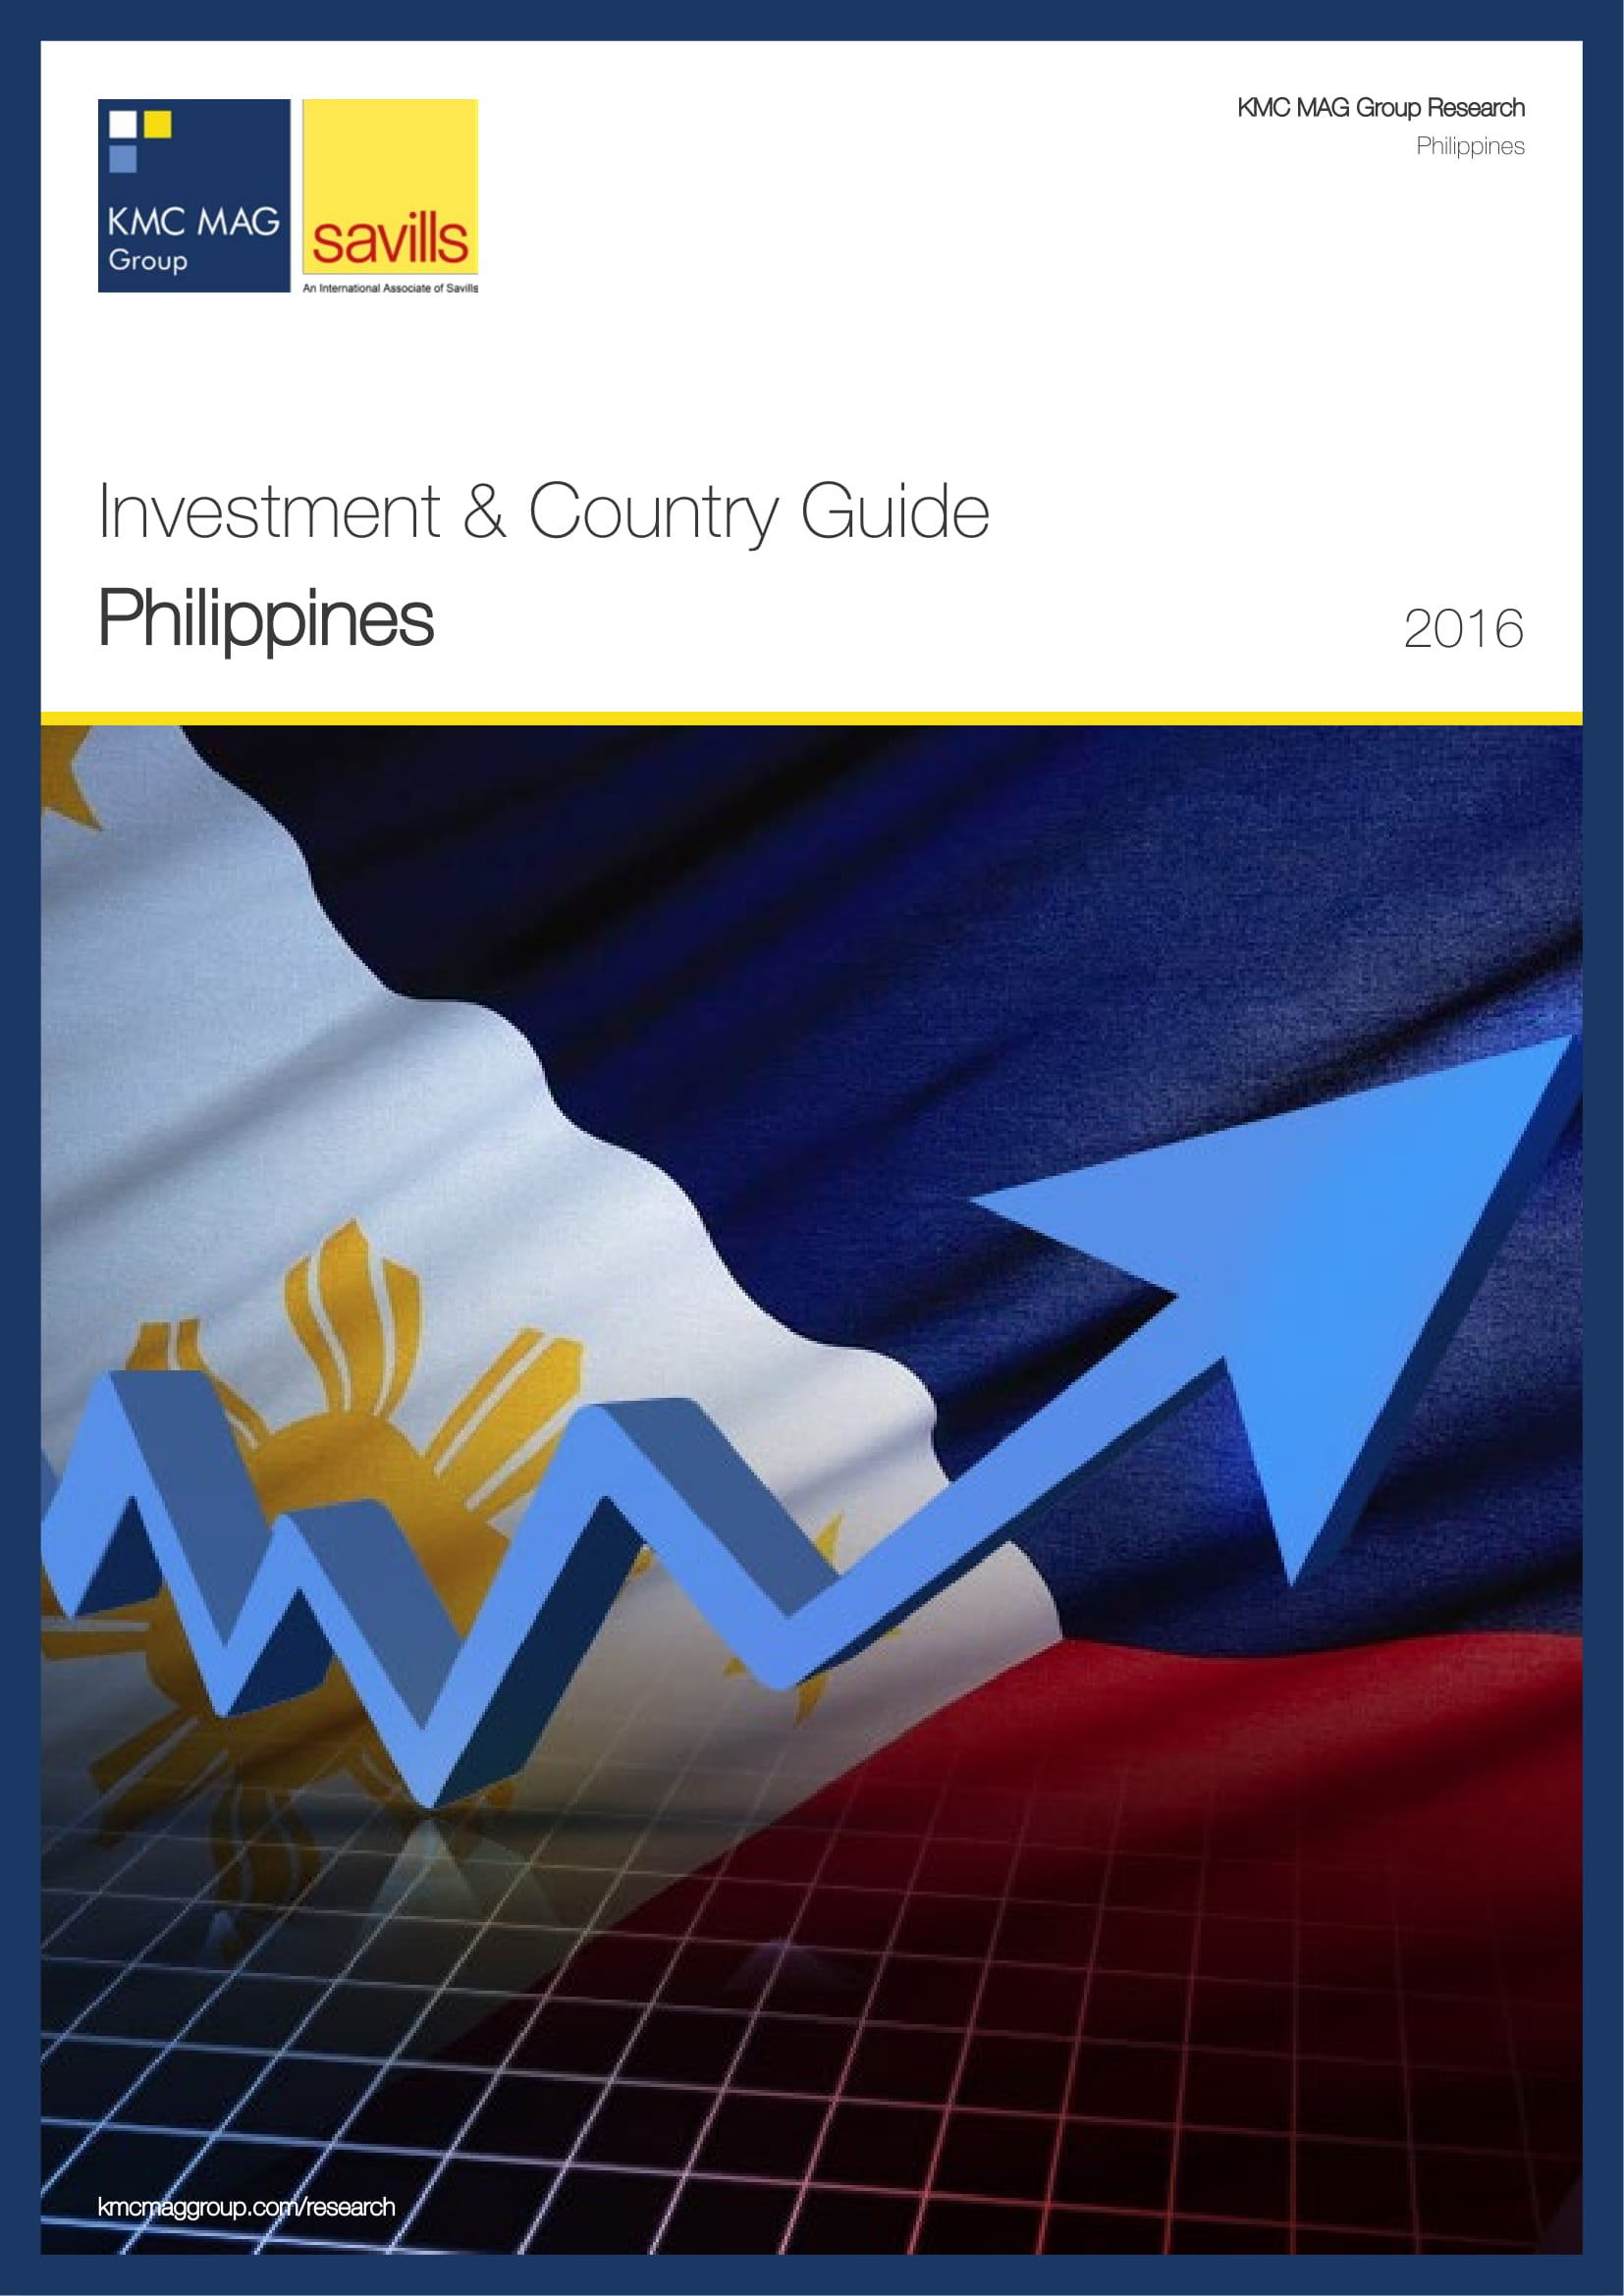 Investment & Country Guide Philippines 2016